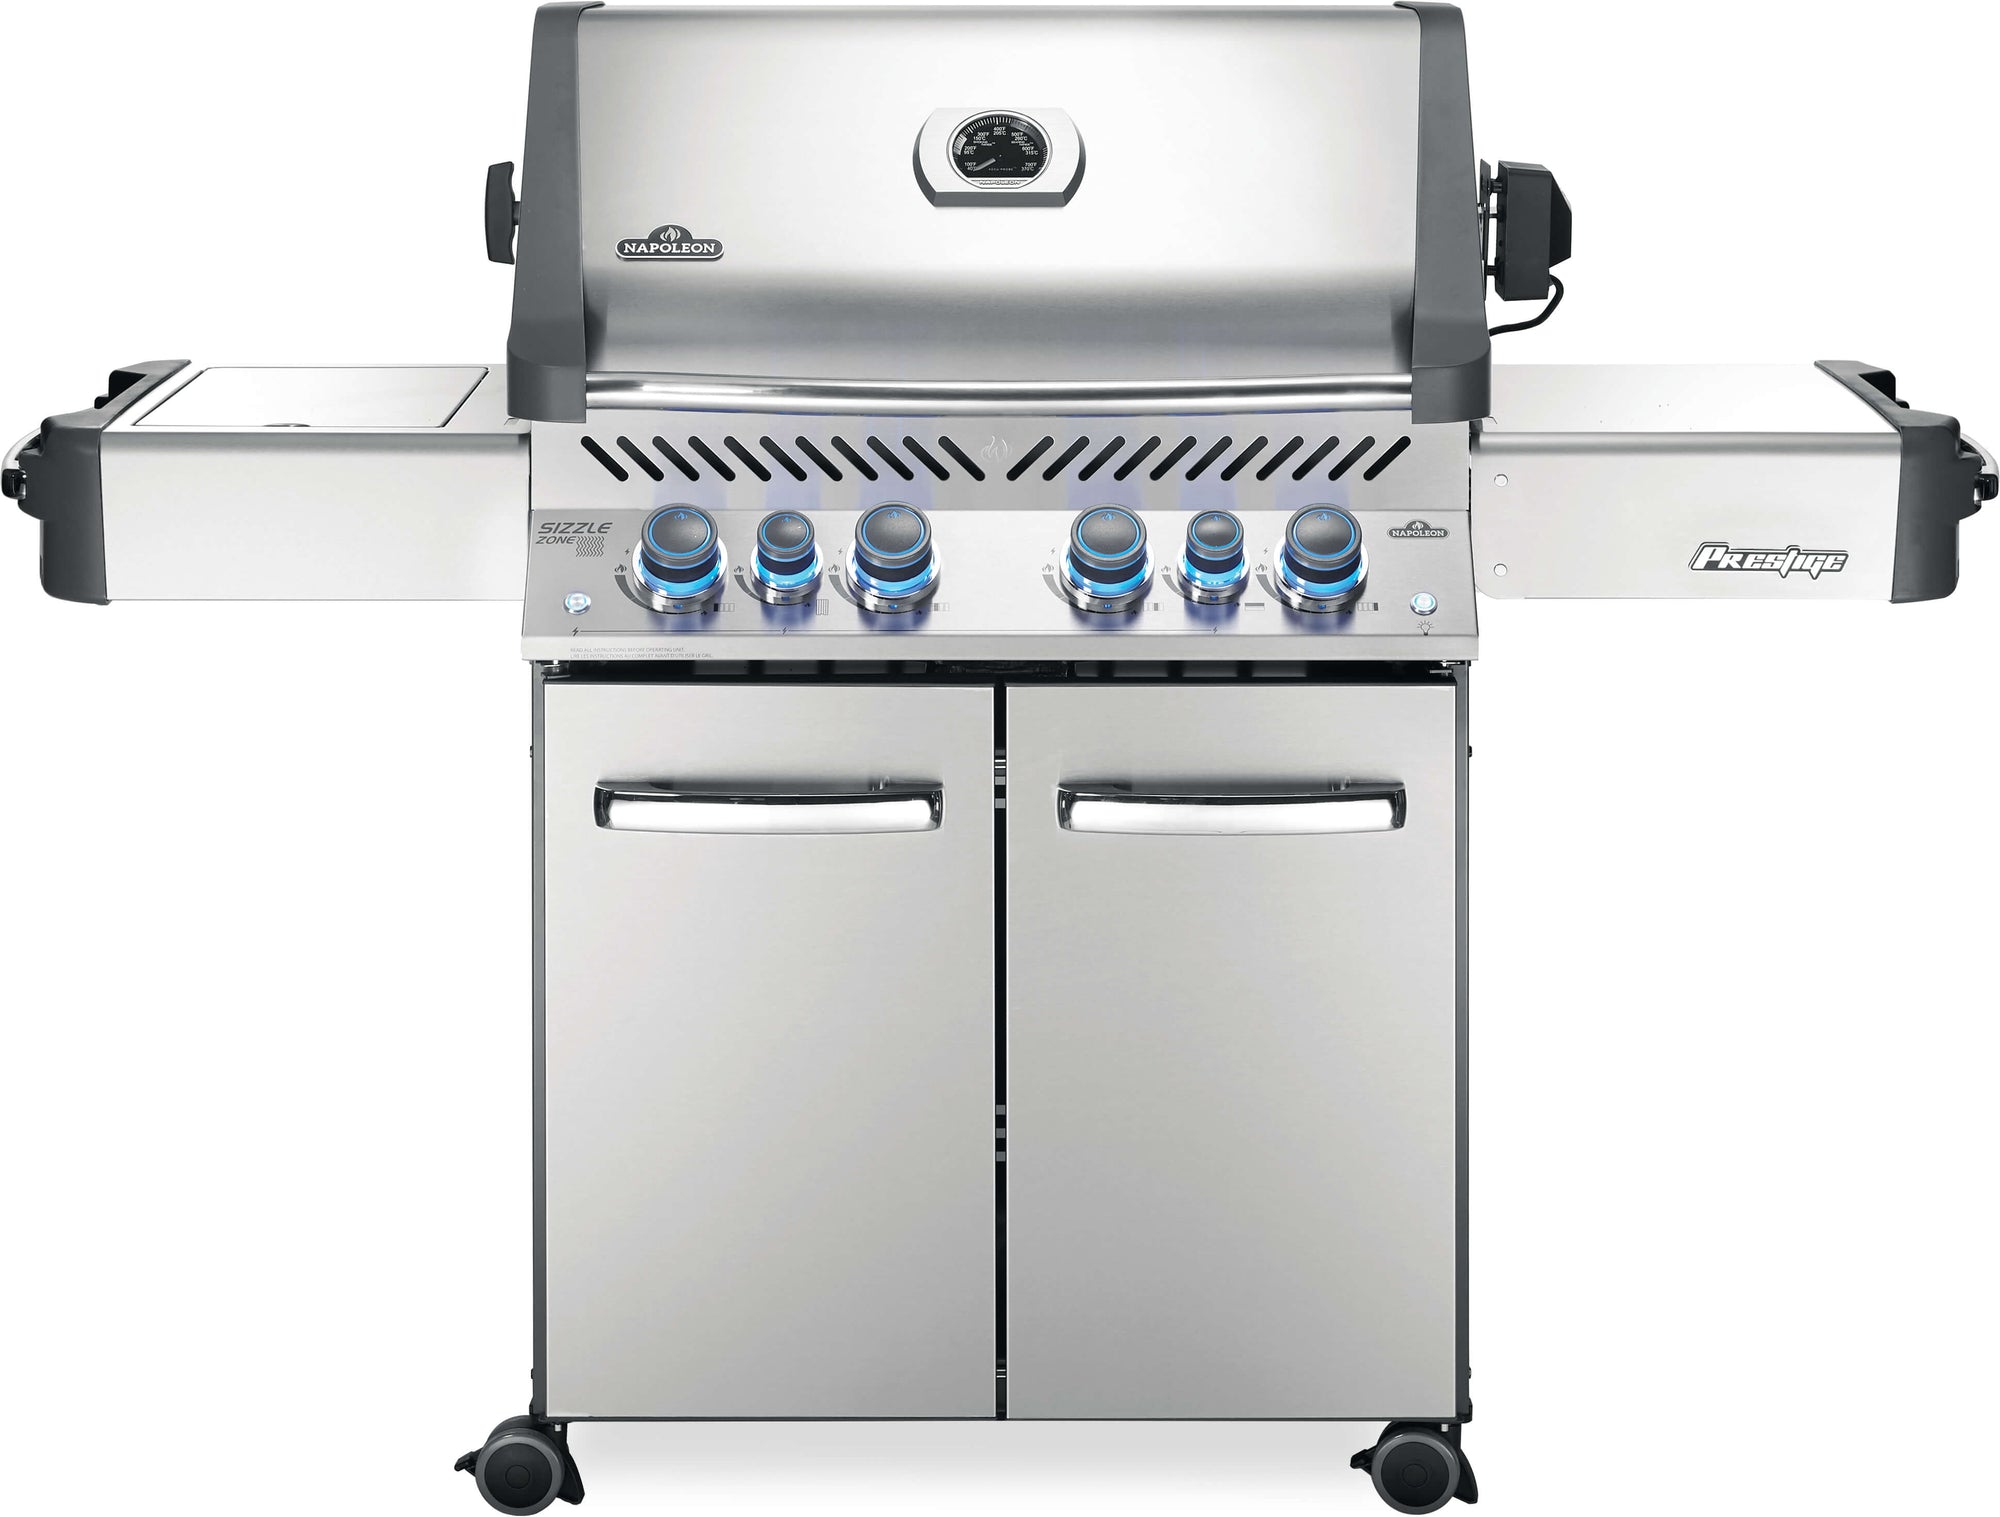 Prestige 500 NG - Stainless Steel with Side Infared and Rear Burner